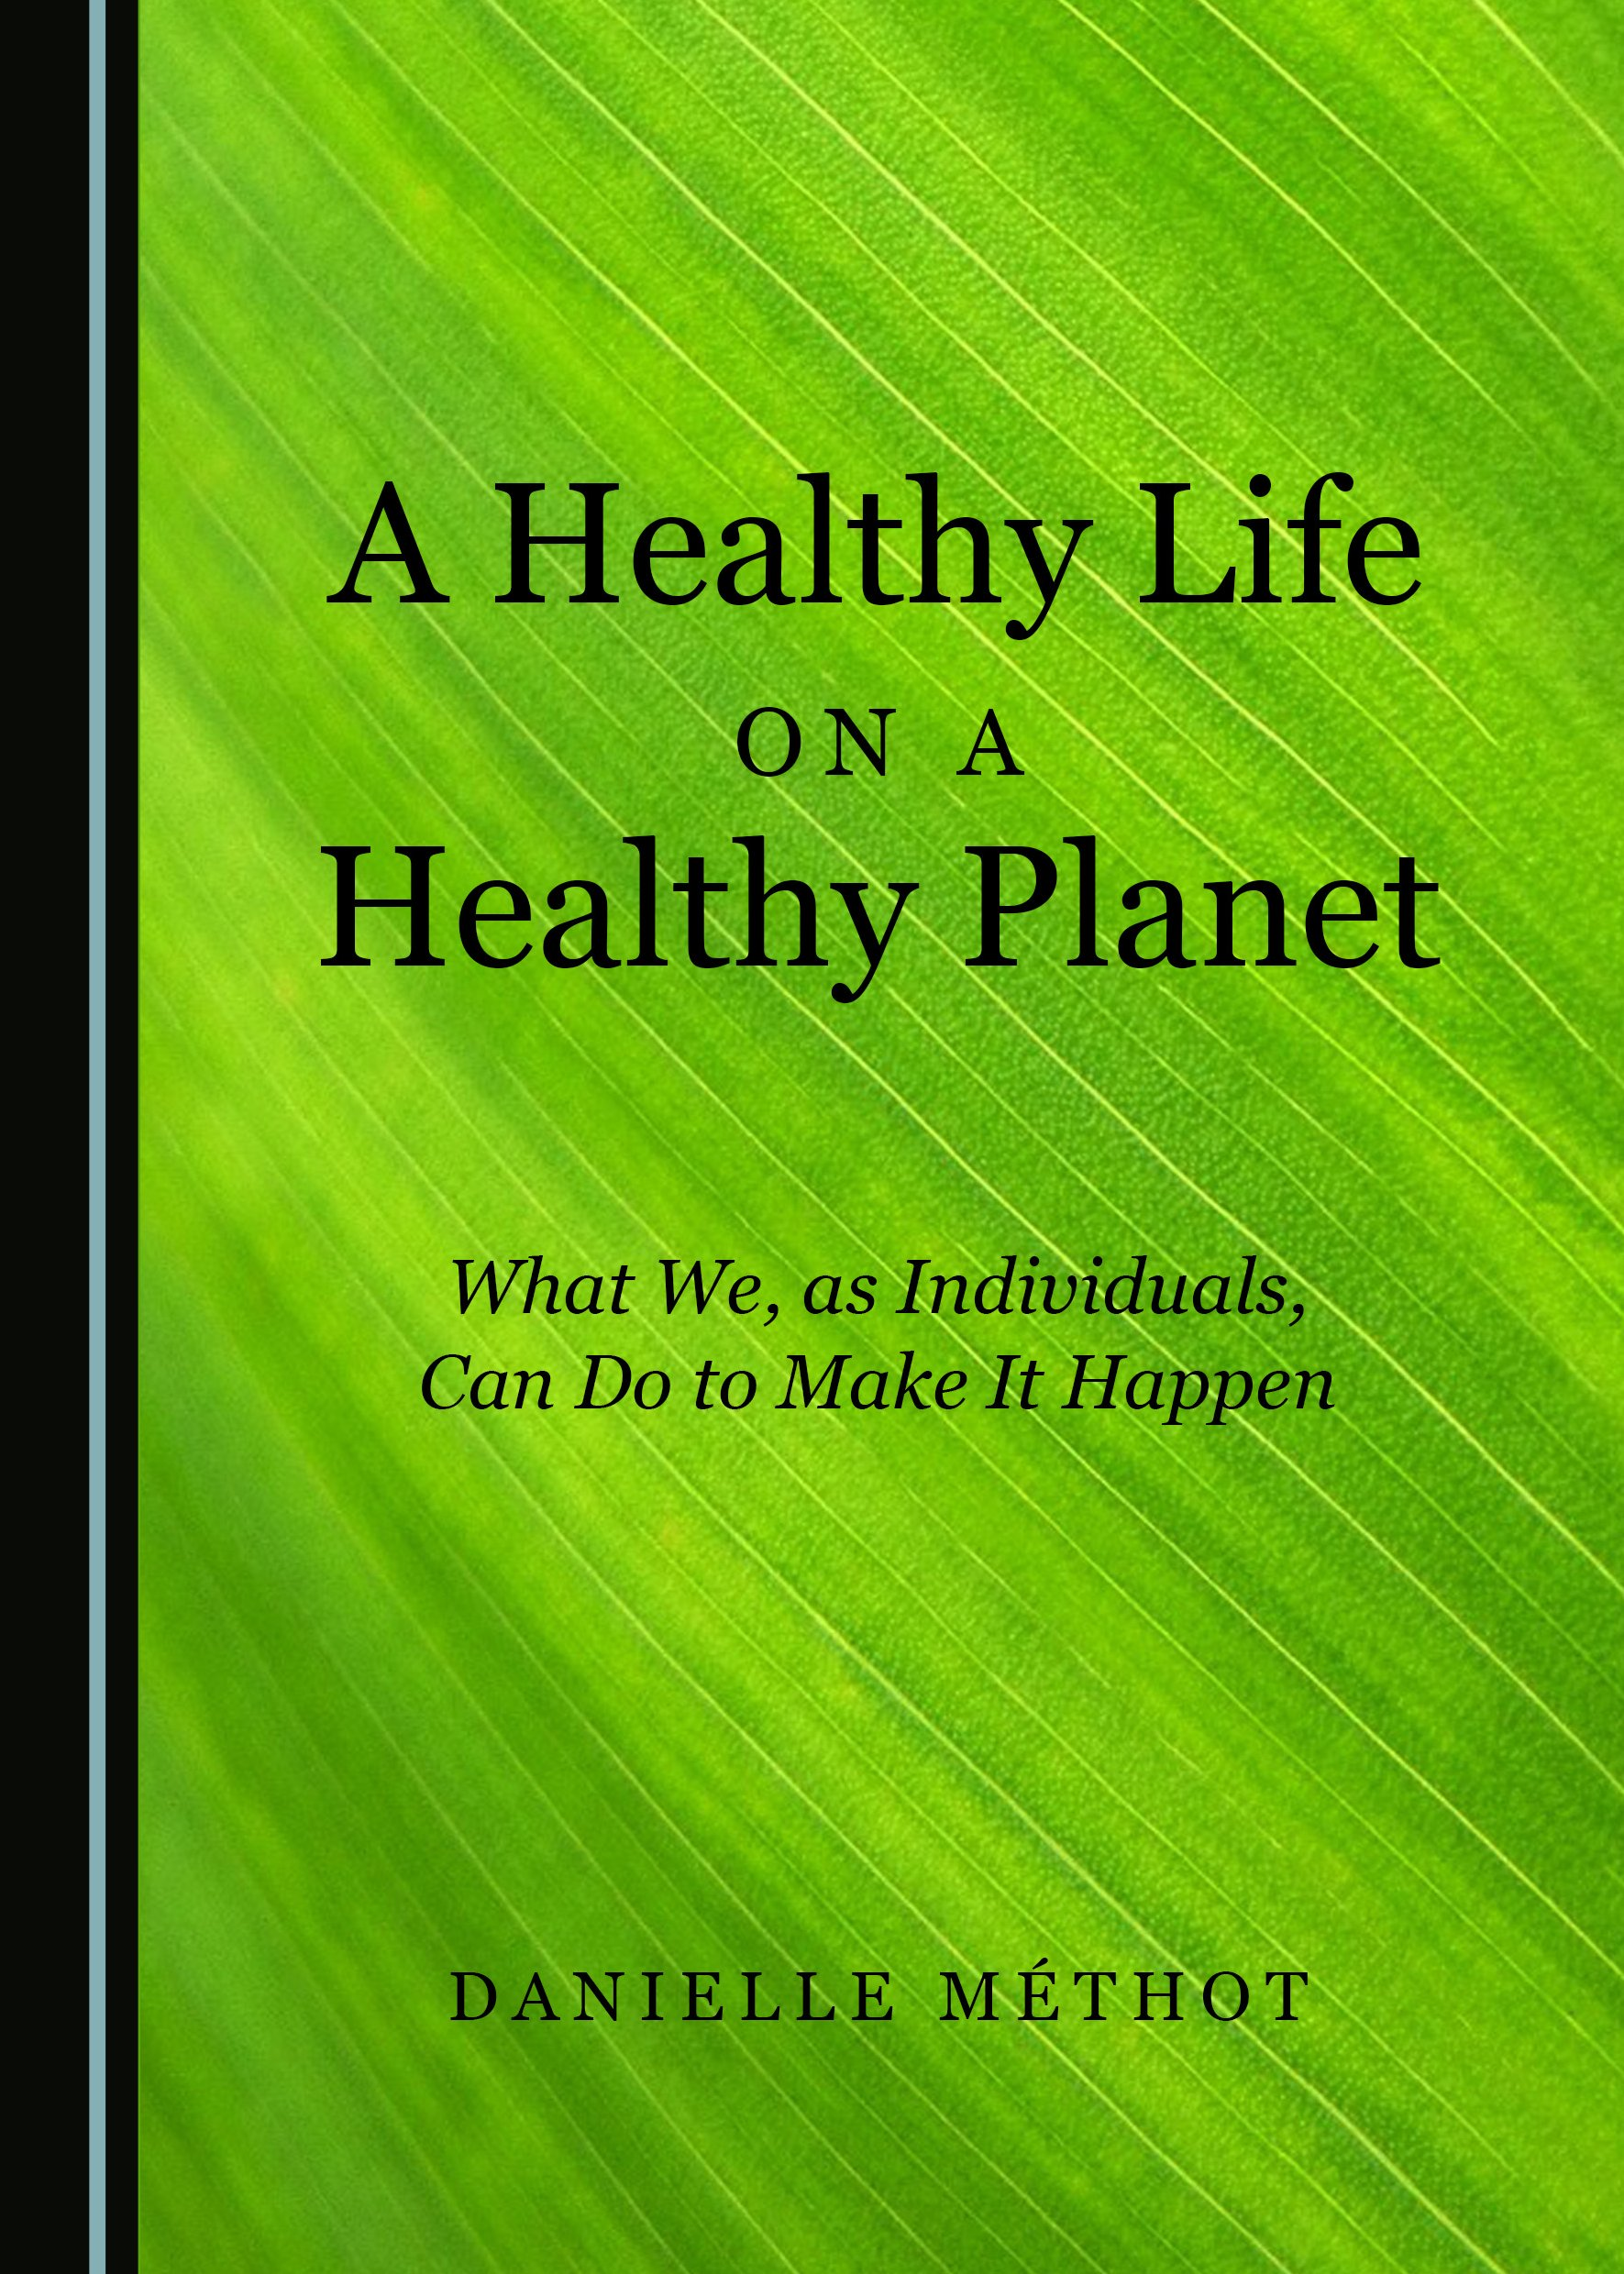 A Healthy Life on a Healthy Planet: What We, as Individuals, Can Do to Make It Happen